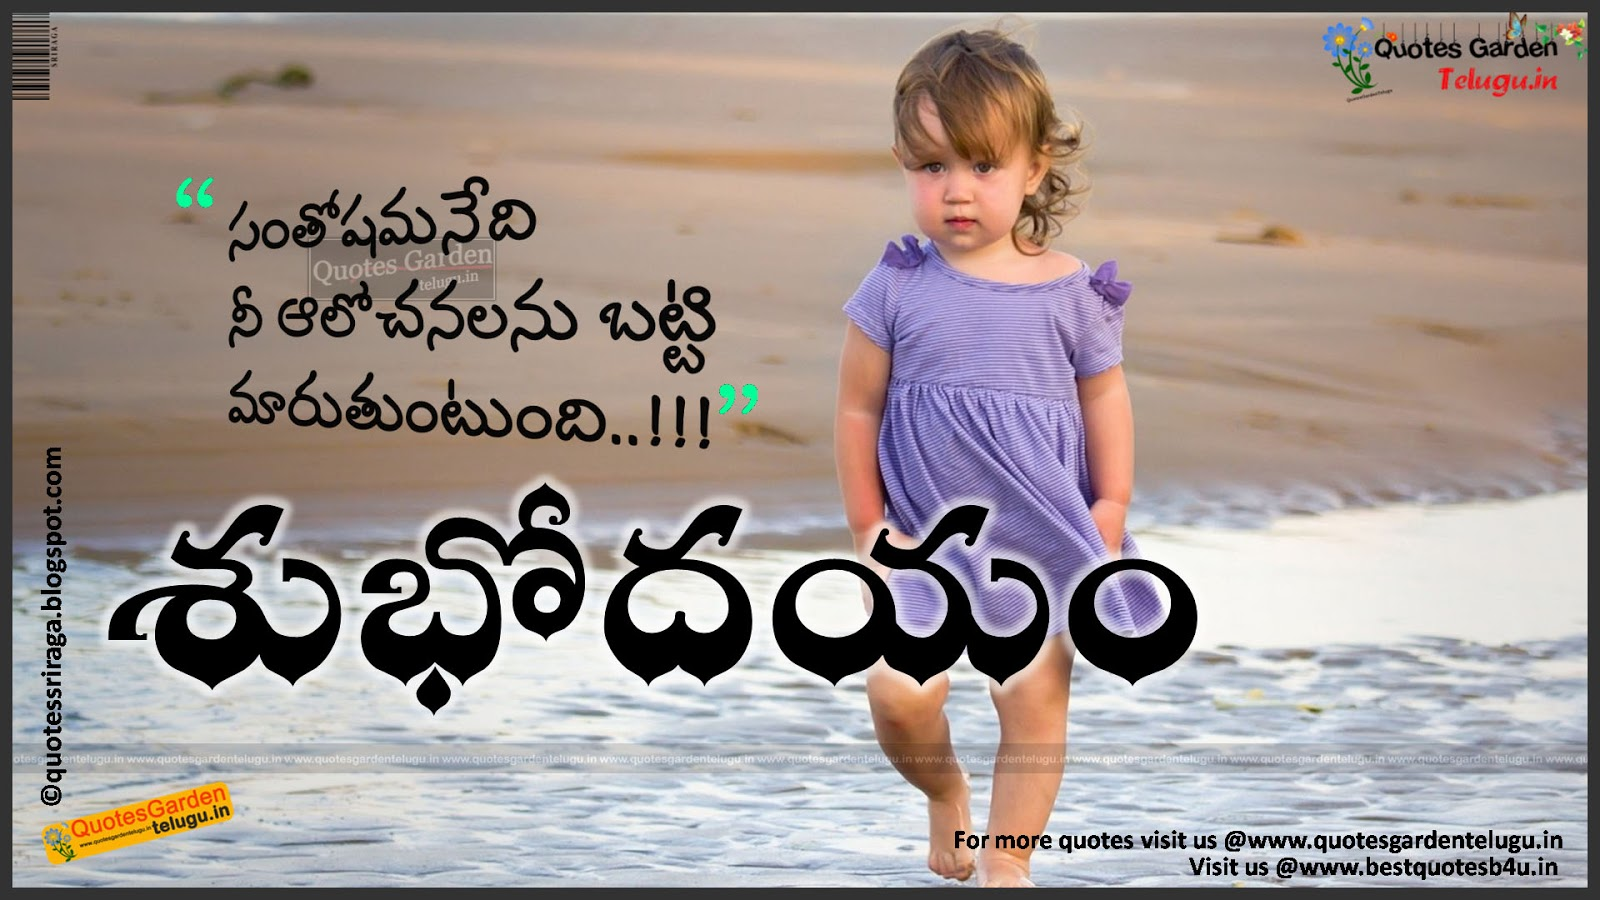 Nice Telugu Good Morning Sms With Best Thoughts Quotes Garden Telugu Telugu Quotes English Quotes Hindi Quotes